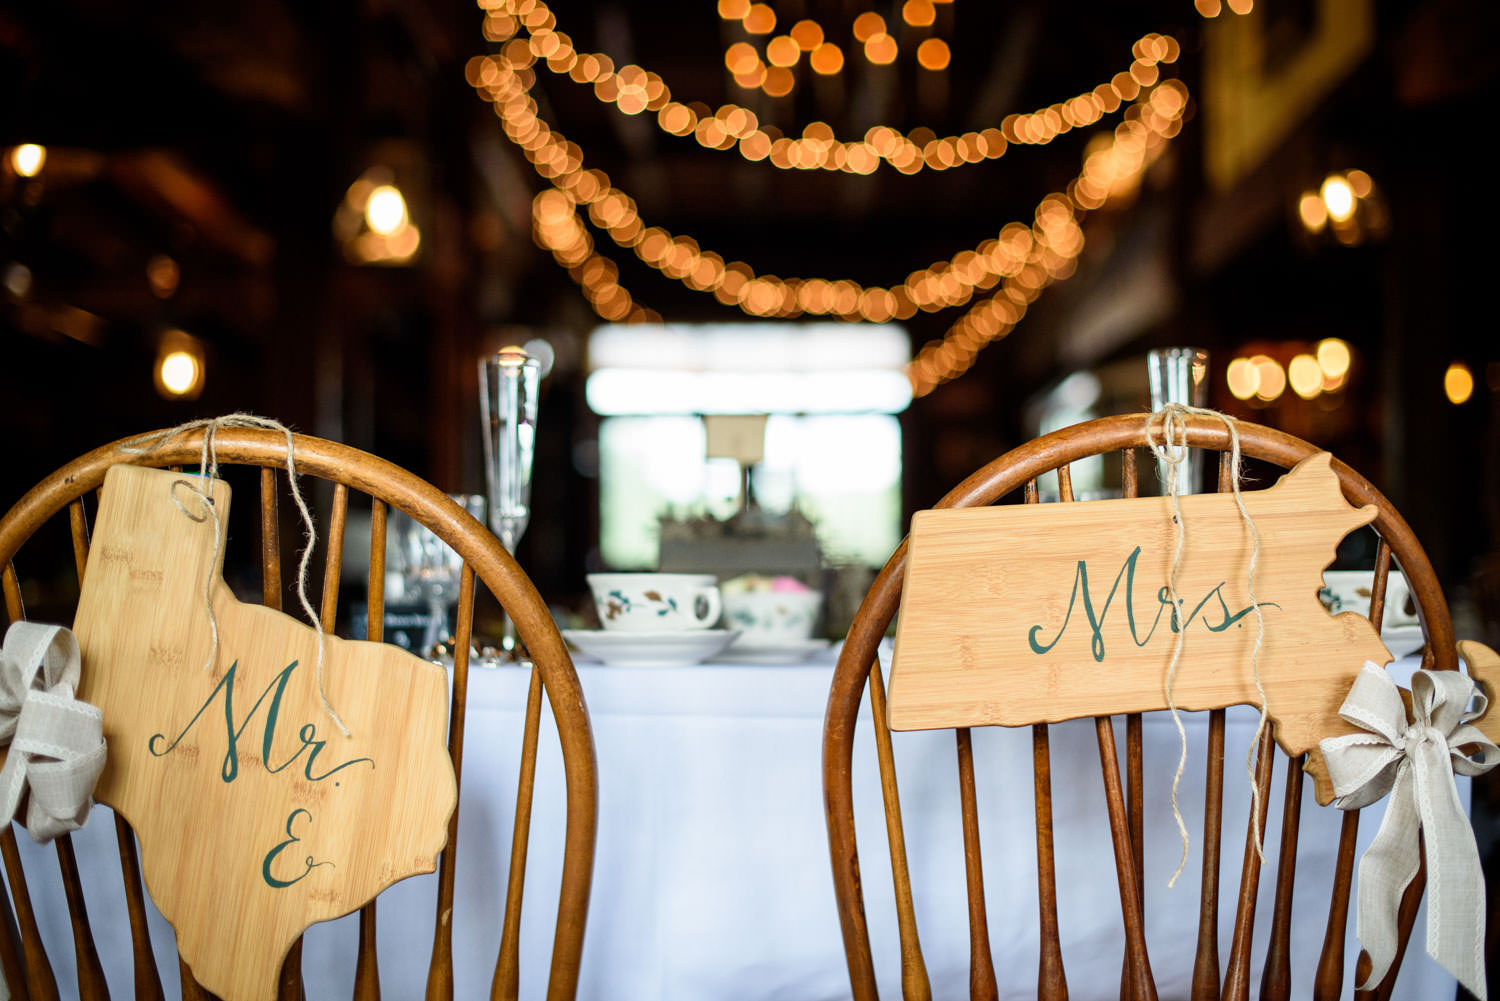 Mr. and Mrs. signs on chairs with twinkle lights in background in reception